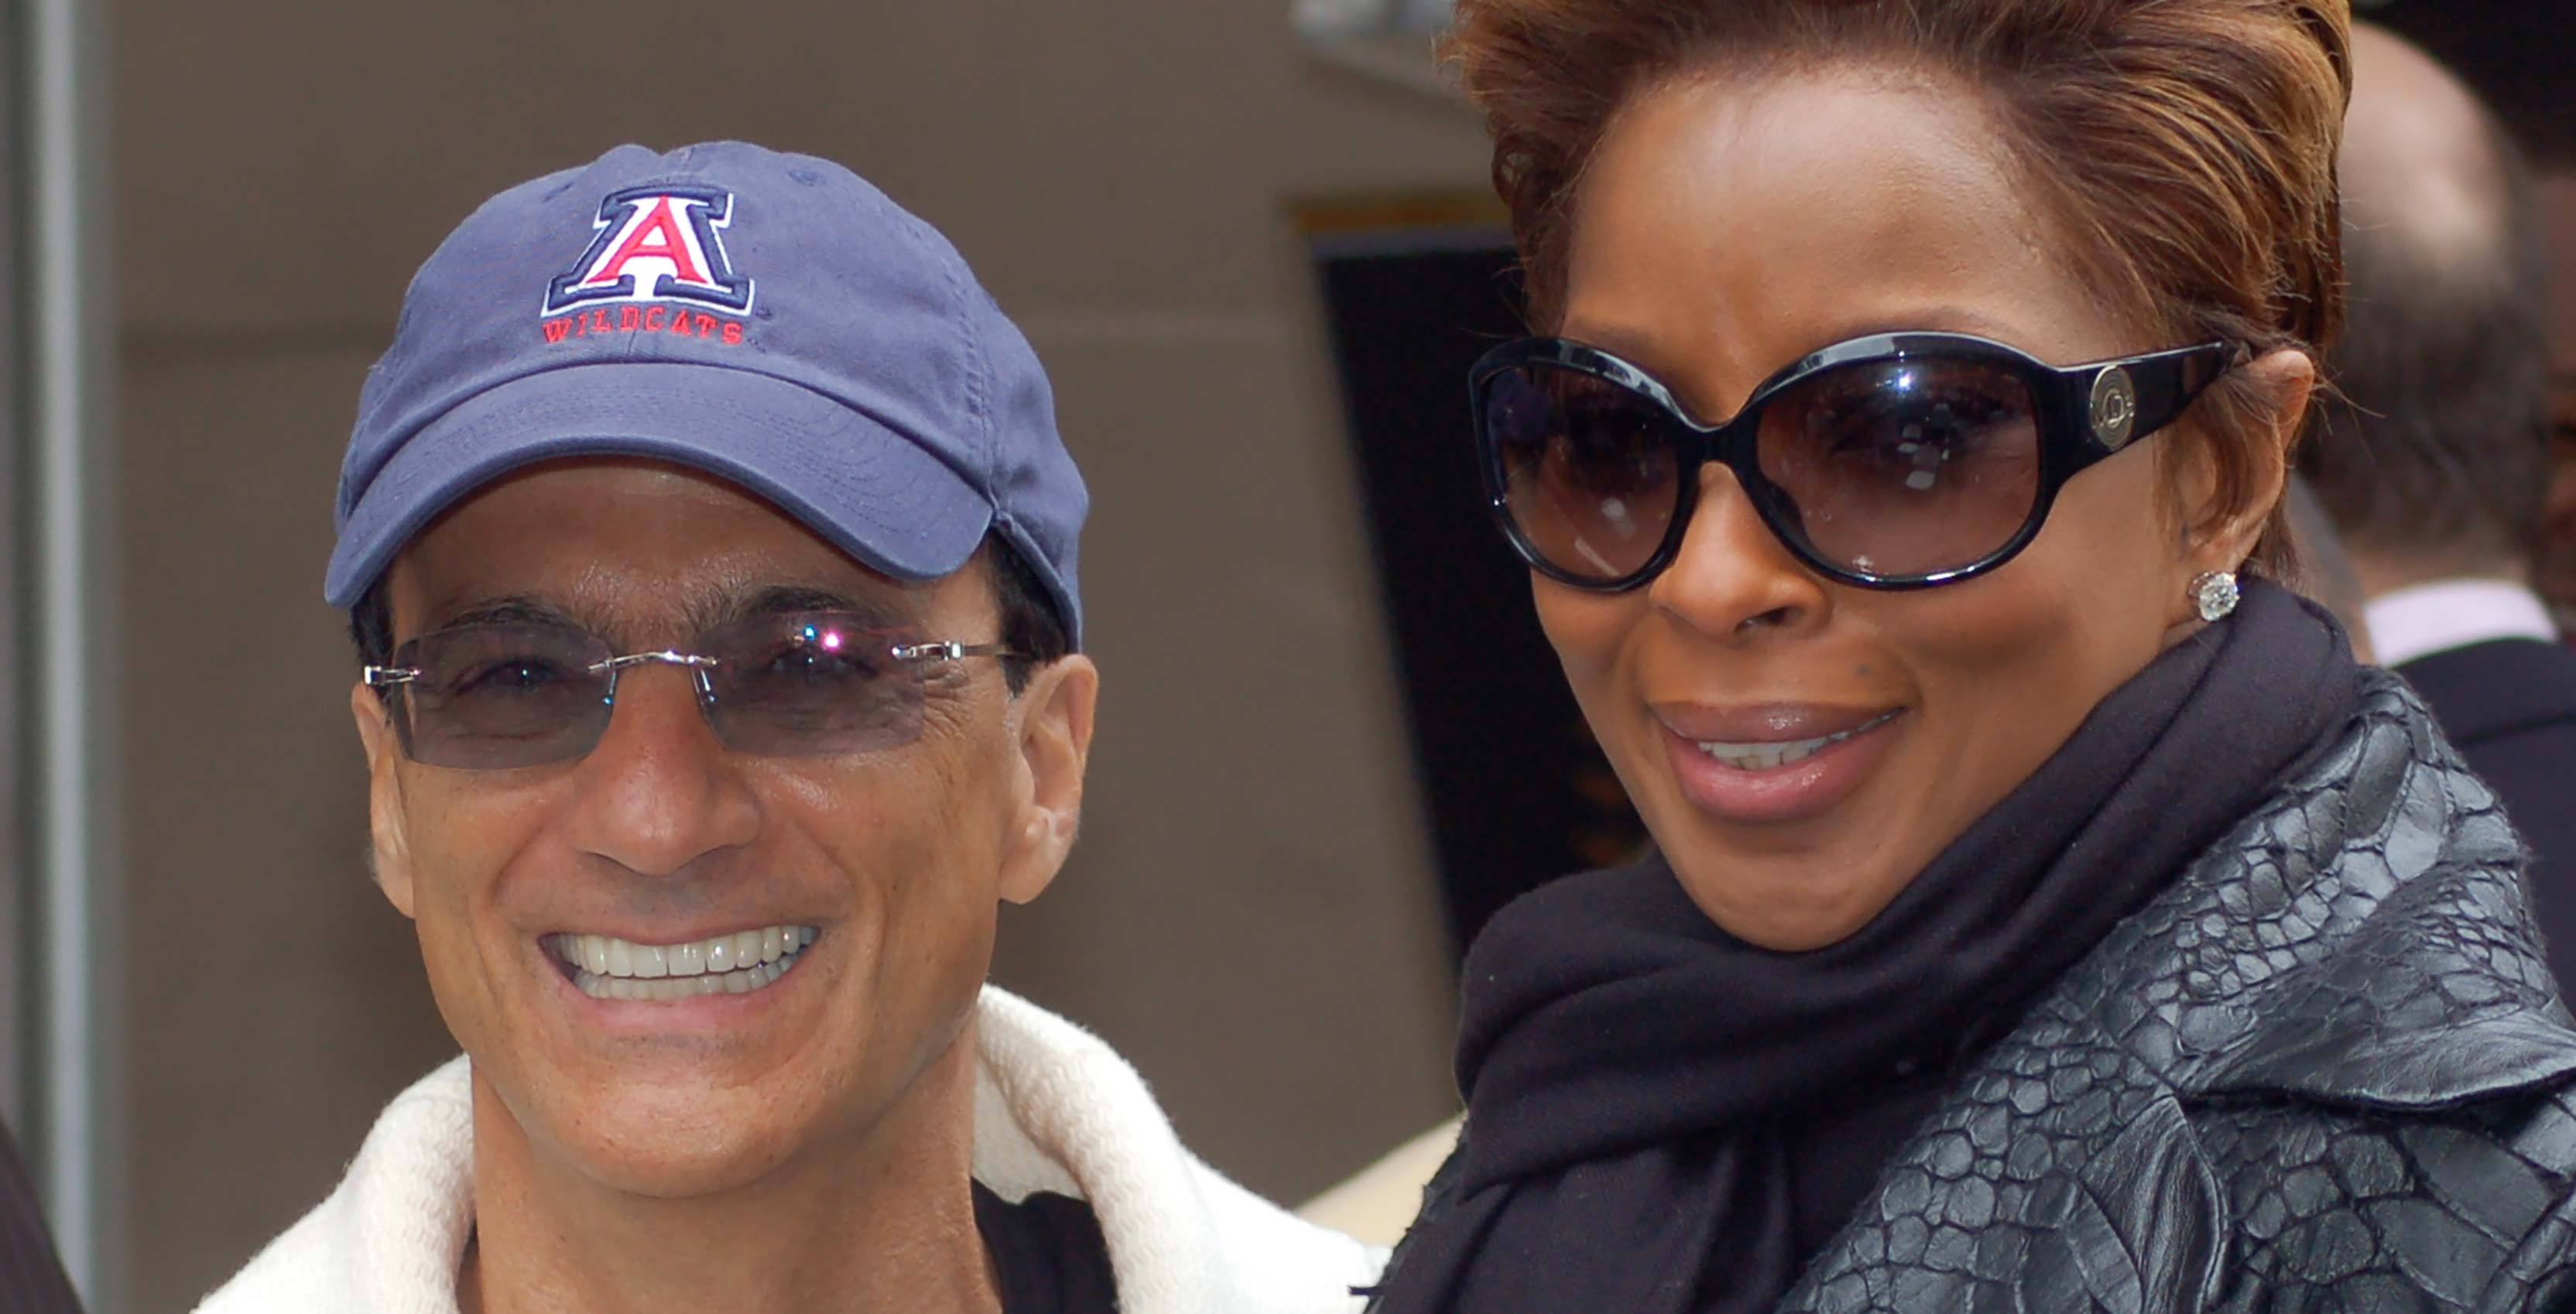 Jimmy Iovine with Mary J. Blige